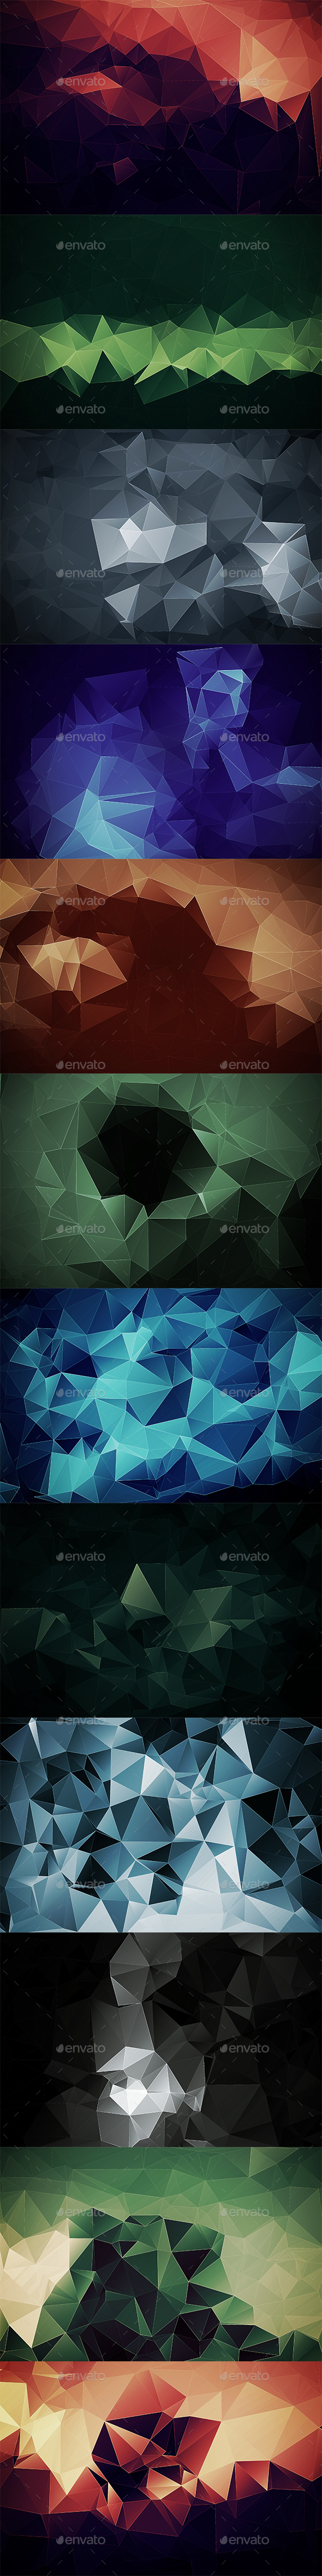 Abstract Polygonal Backgrounds Vol7 - Abstract Backgrounds